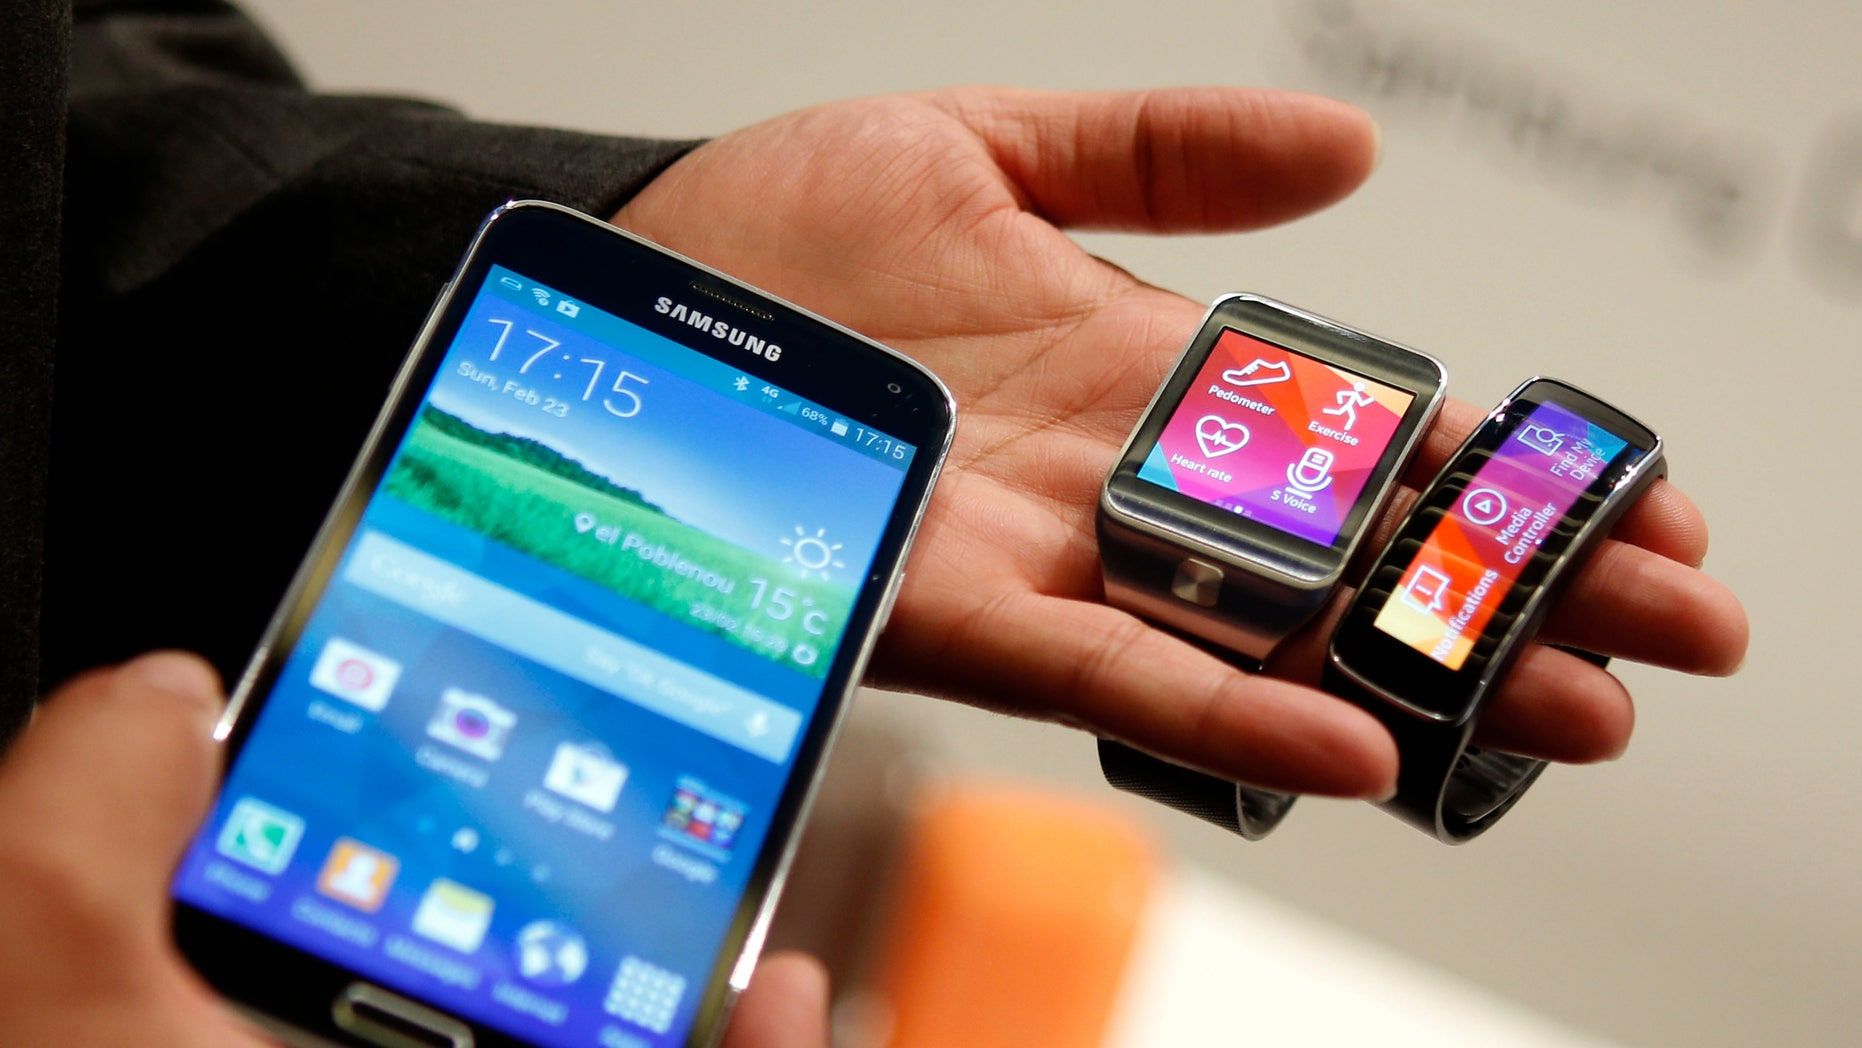 The Samsung Galaxy S5 smartphone (L), Gear 2 smartwatch (C) and Gear Fit fitness band are displayed at the Mobile World Congress in Barcelona.